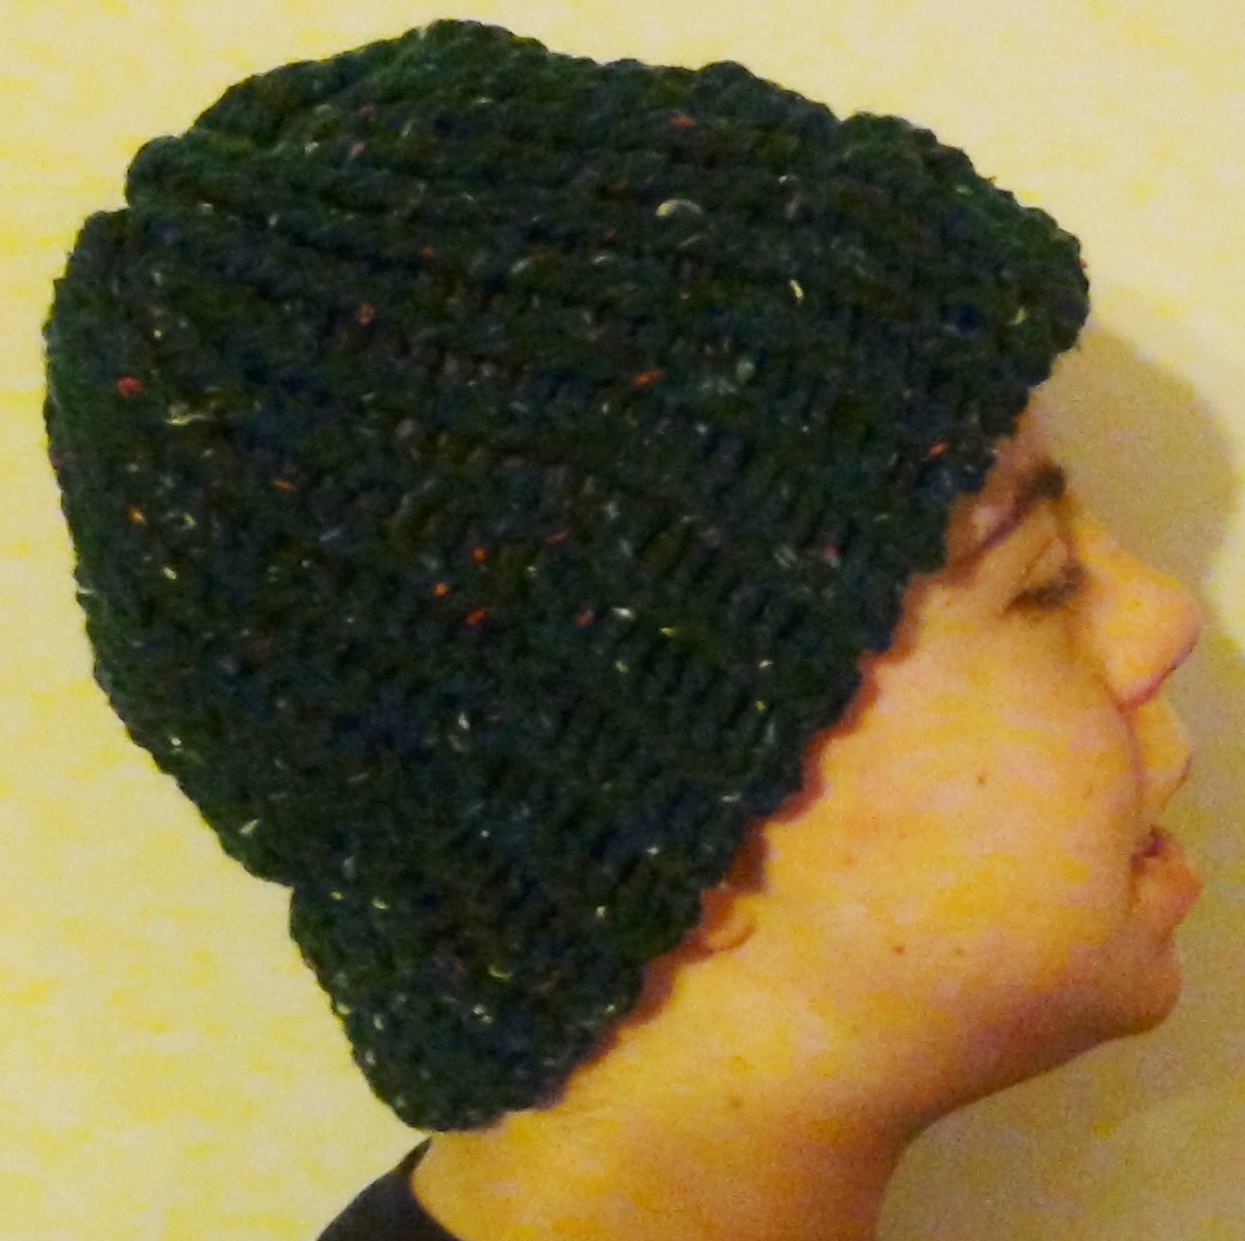 http://kniftyknitterweekly.blogspot.com/2013/02/basic-knifty-knitter-hat-on-round-green.html